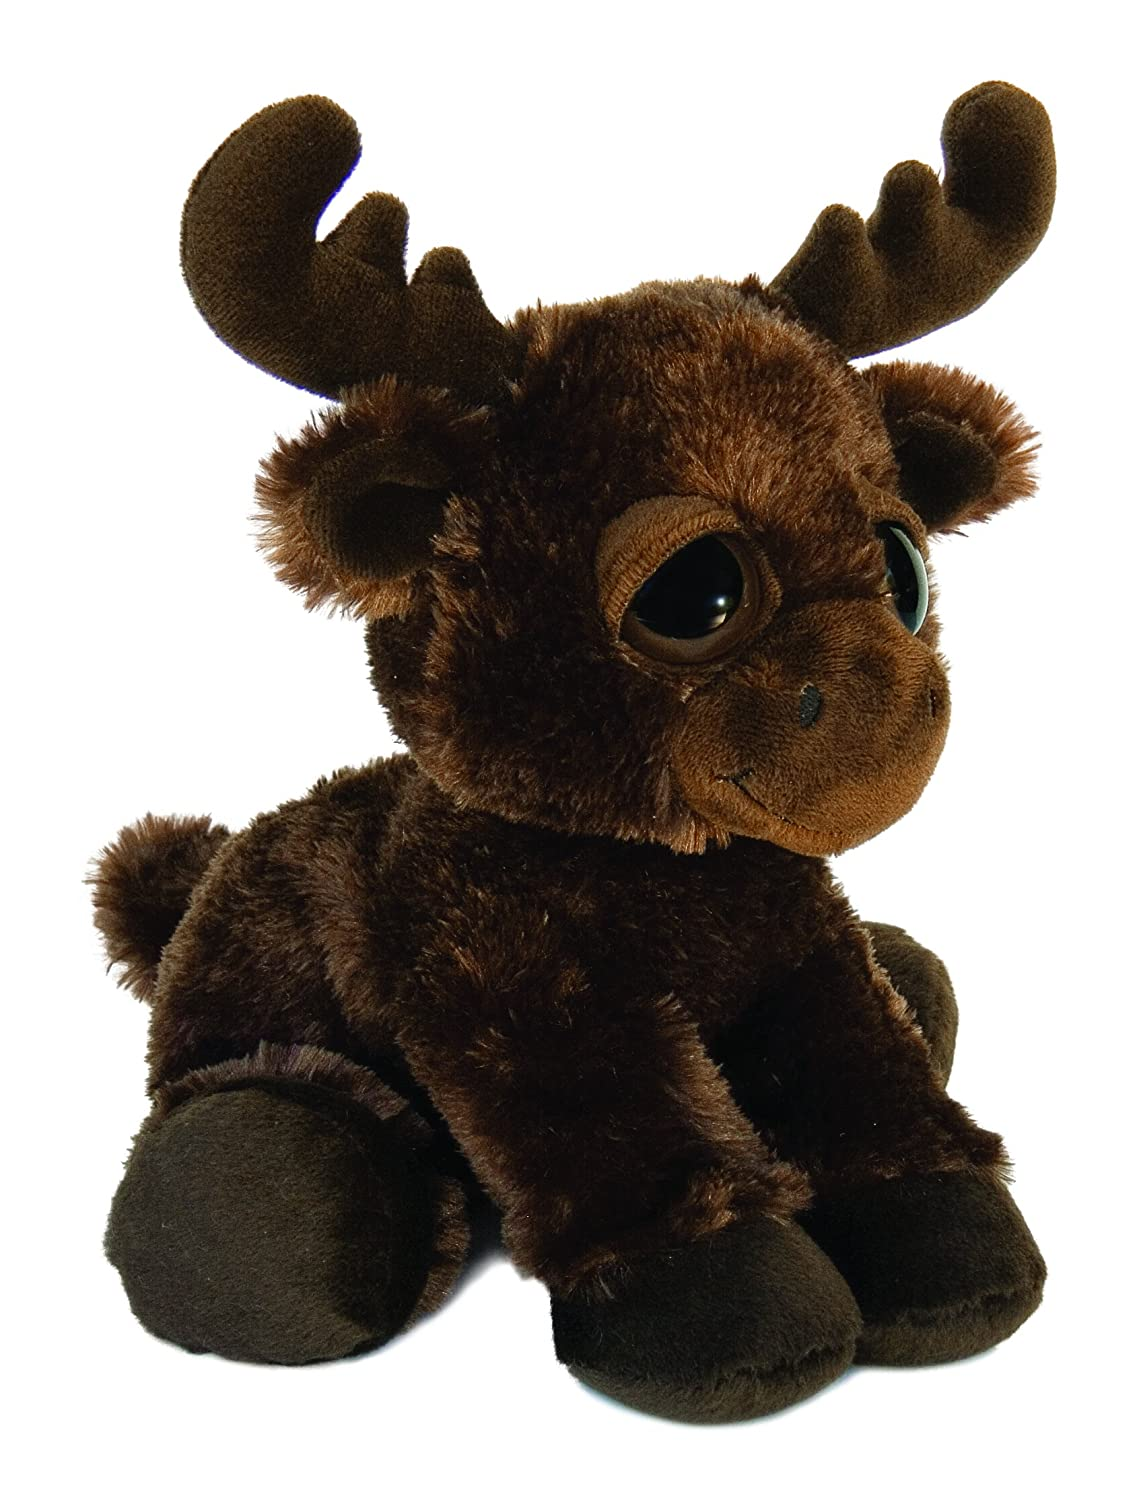 "Michigan Moose Dreamy Eyes 10"" Stuffed Animal Aurora 21206 AUR_DE10_michigan-21206"